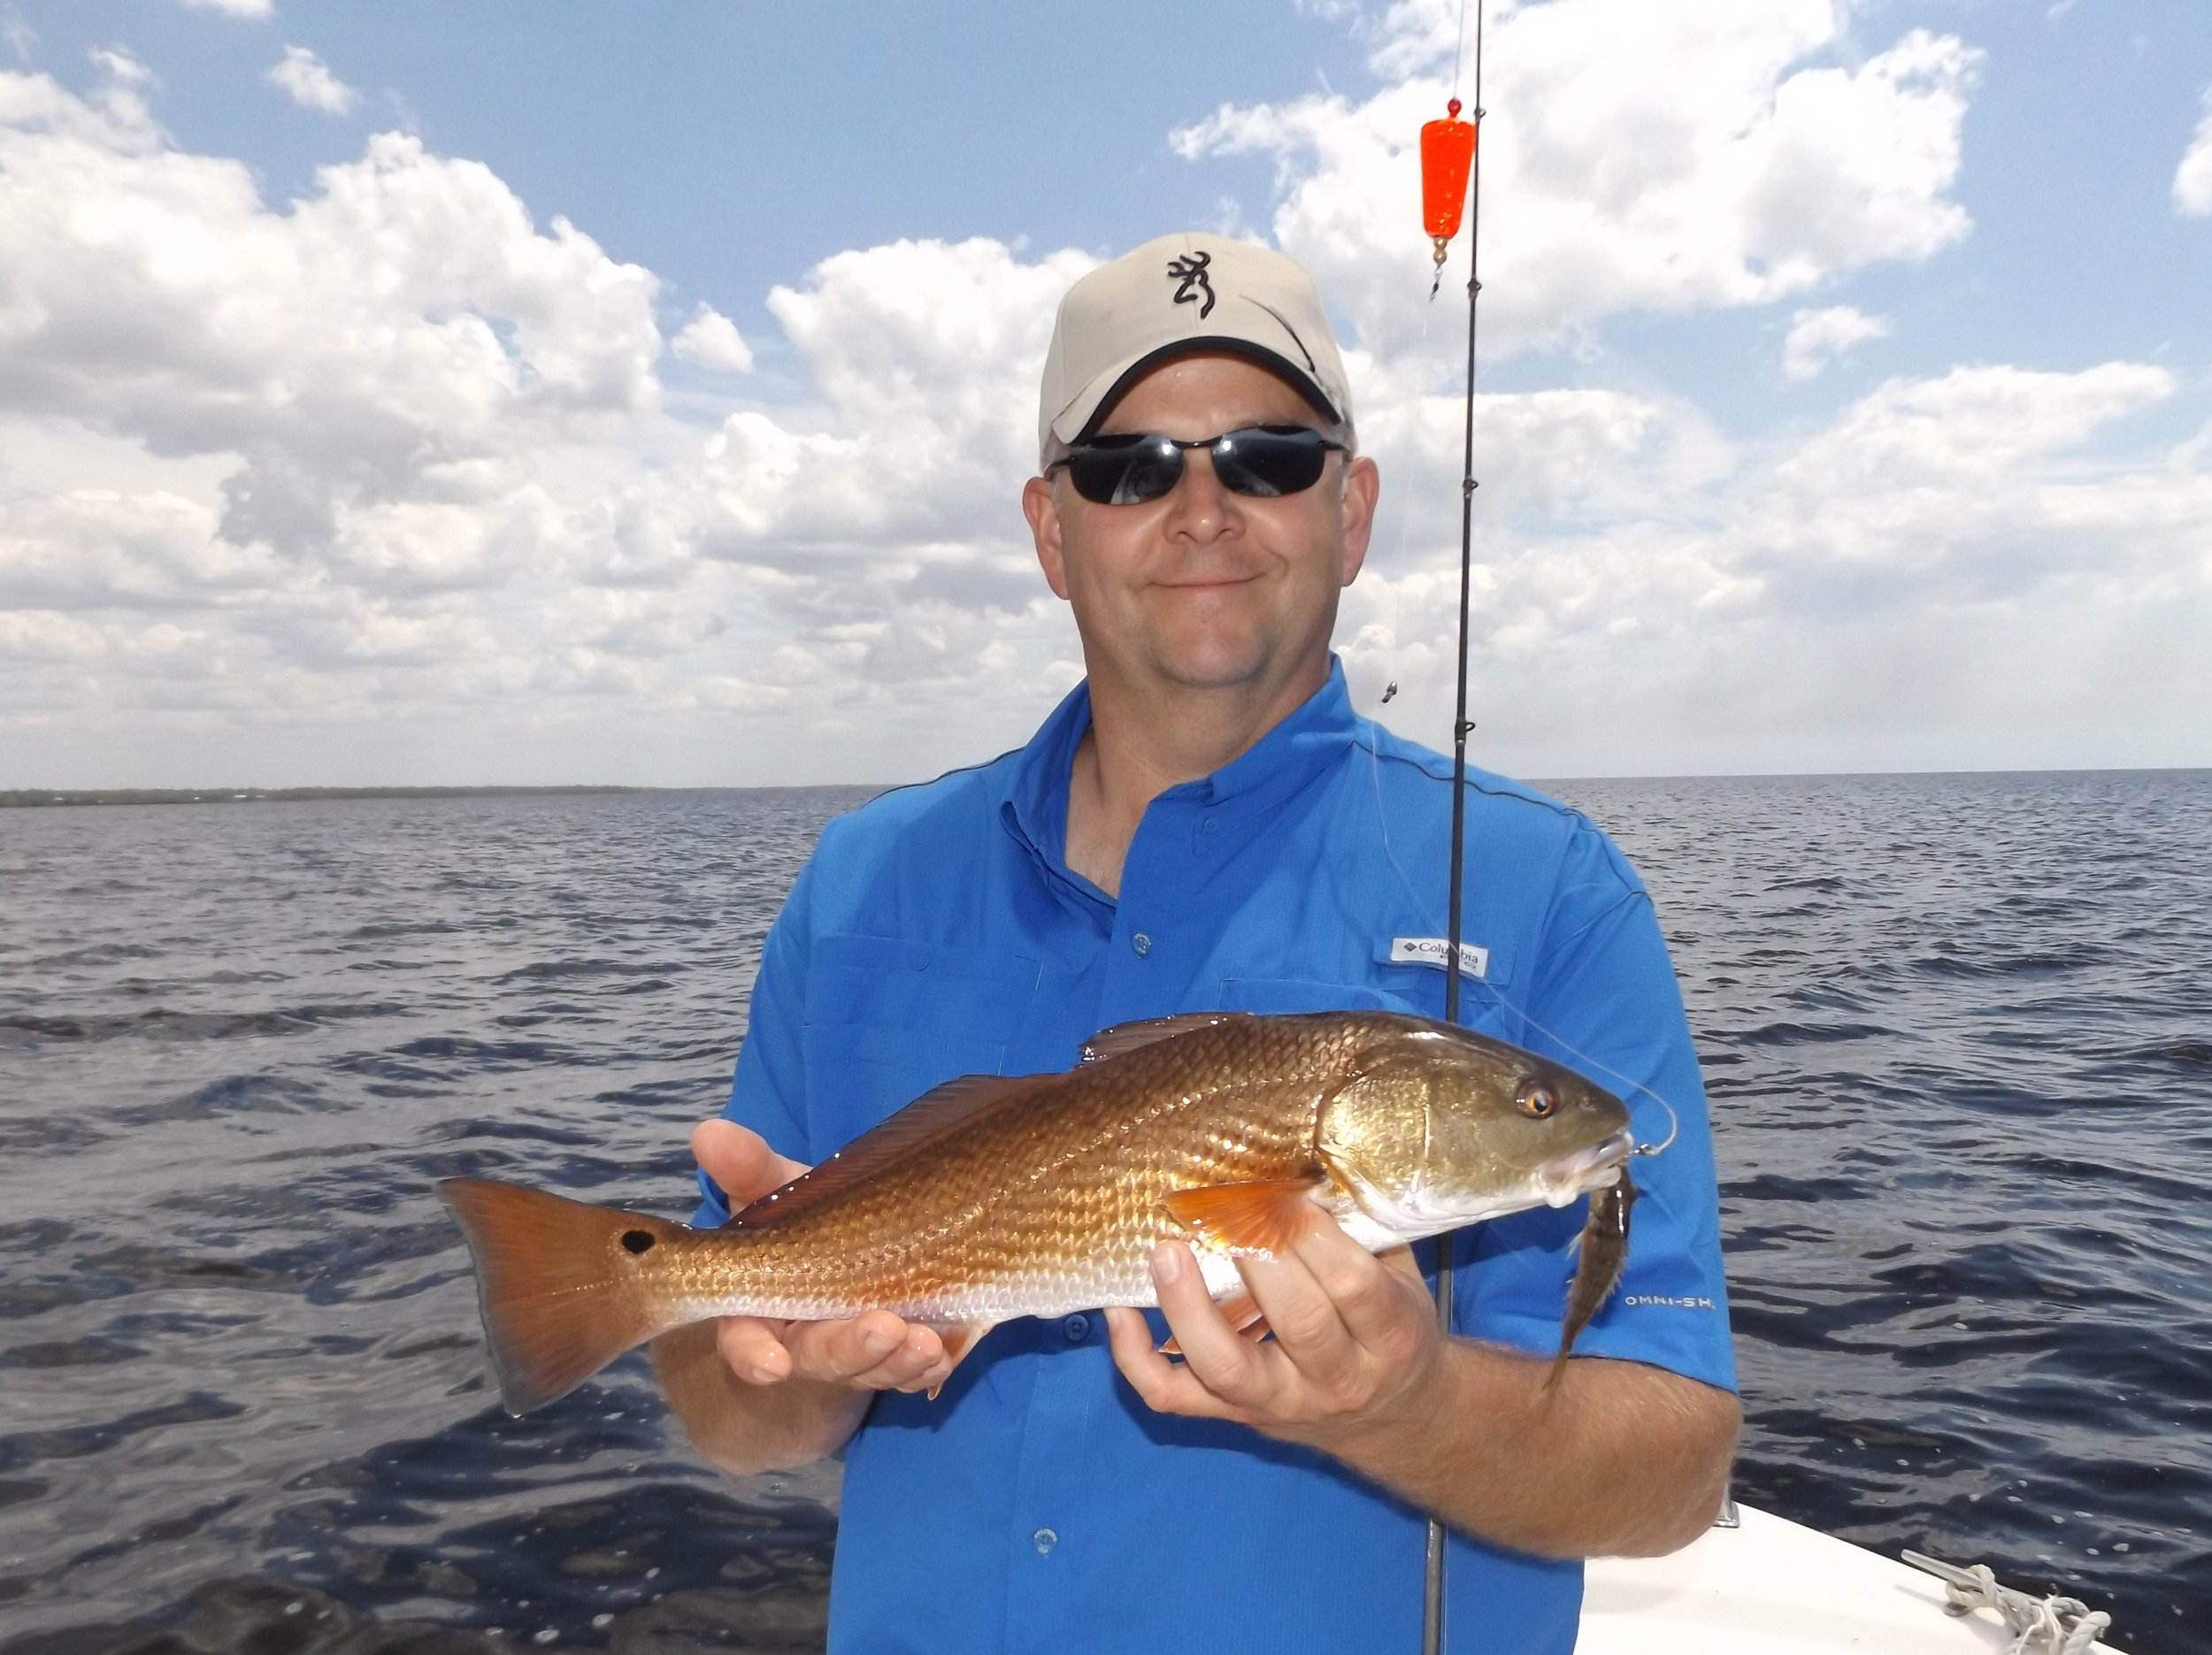 ken baldree of ADEL, GEORGIA WITH HIS FIRST-EVER REDFISH